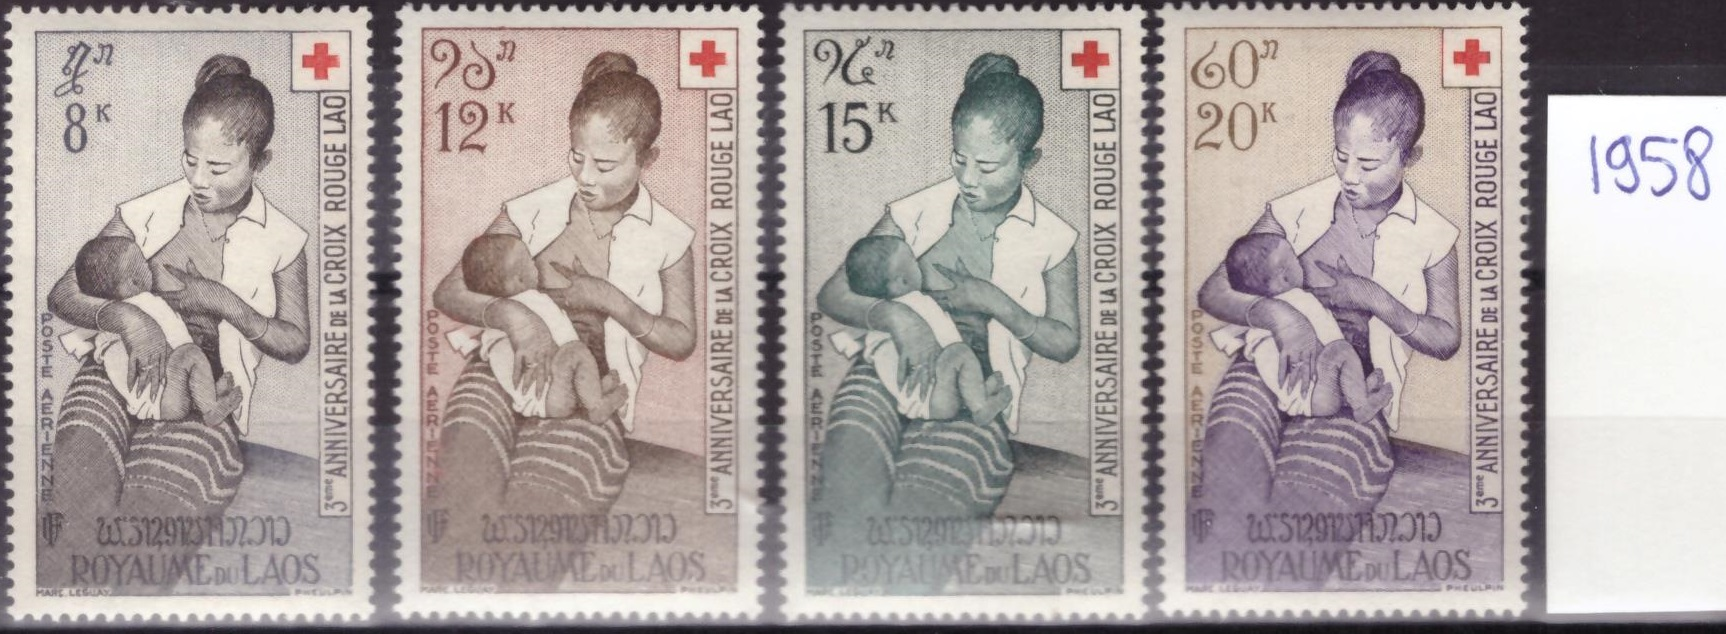 timbres_croix_rouge_laos_1958.jpg